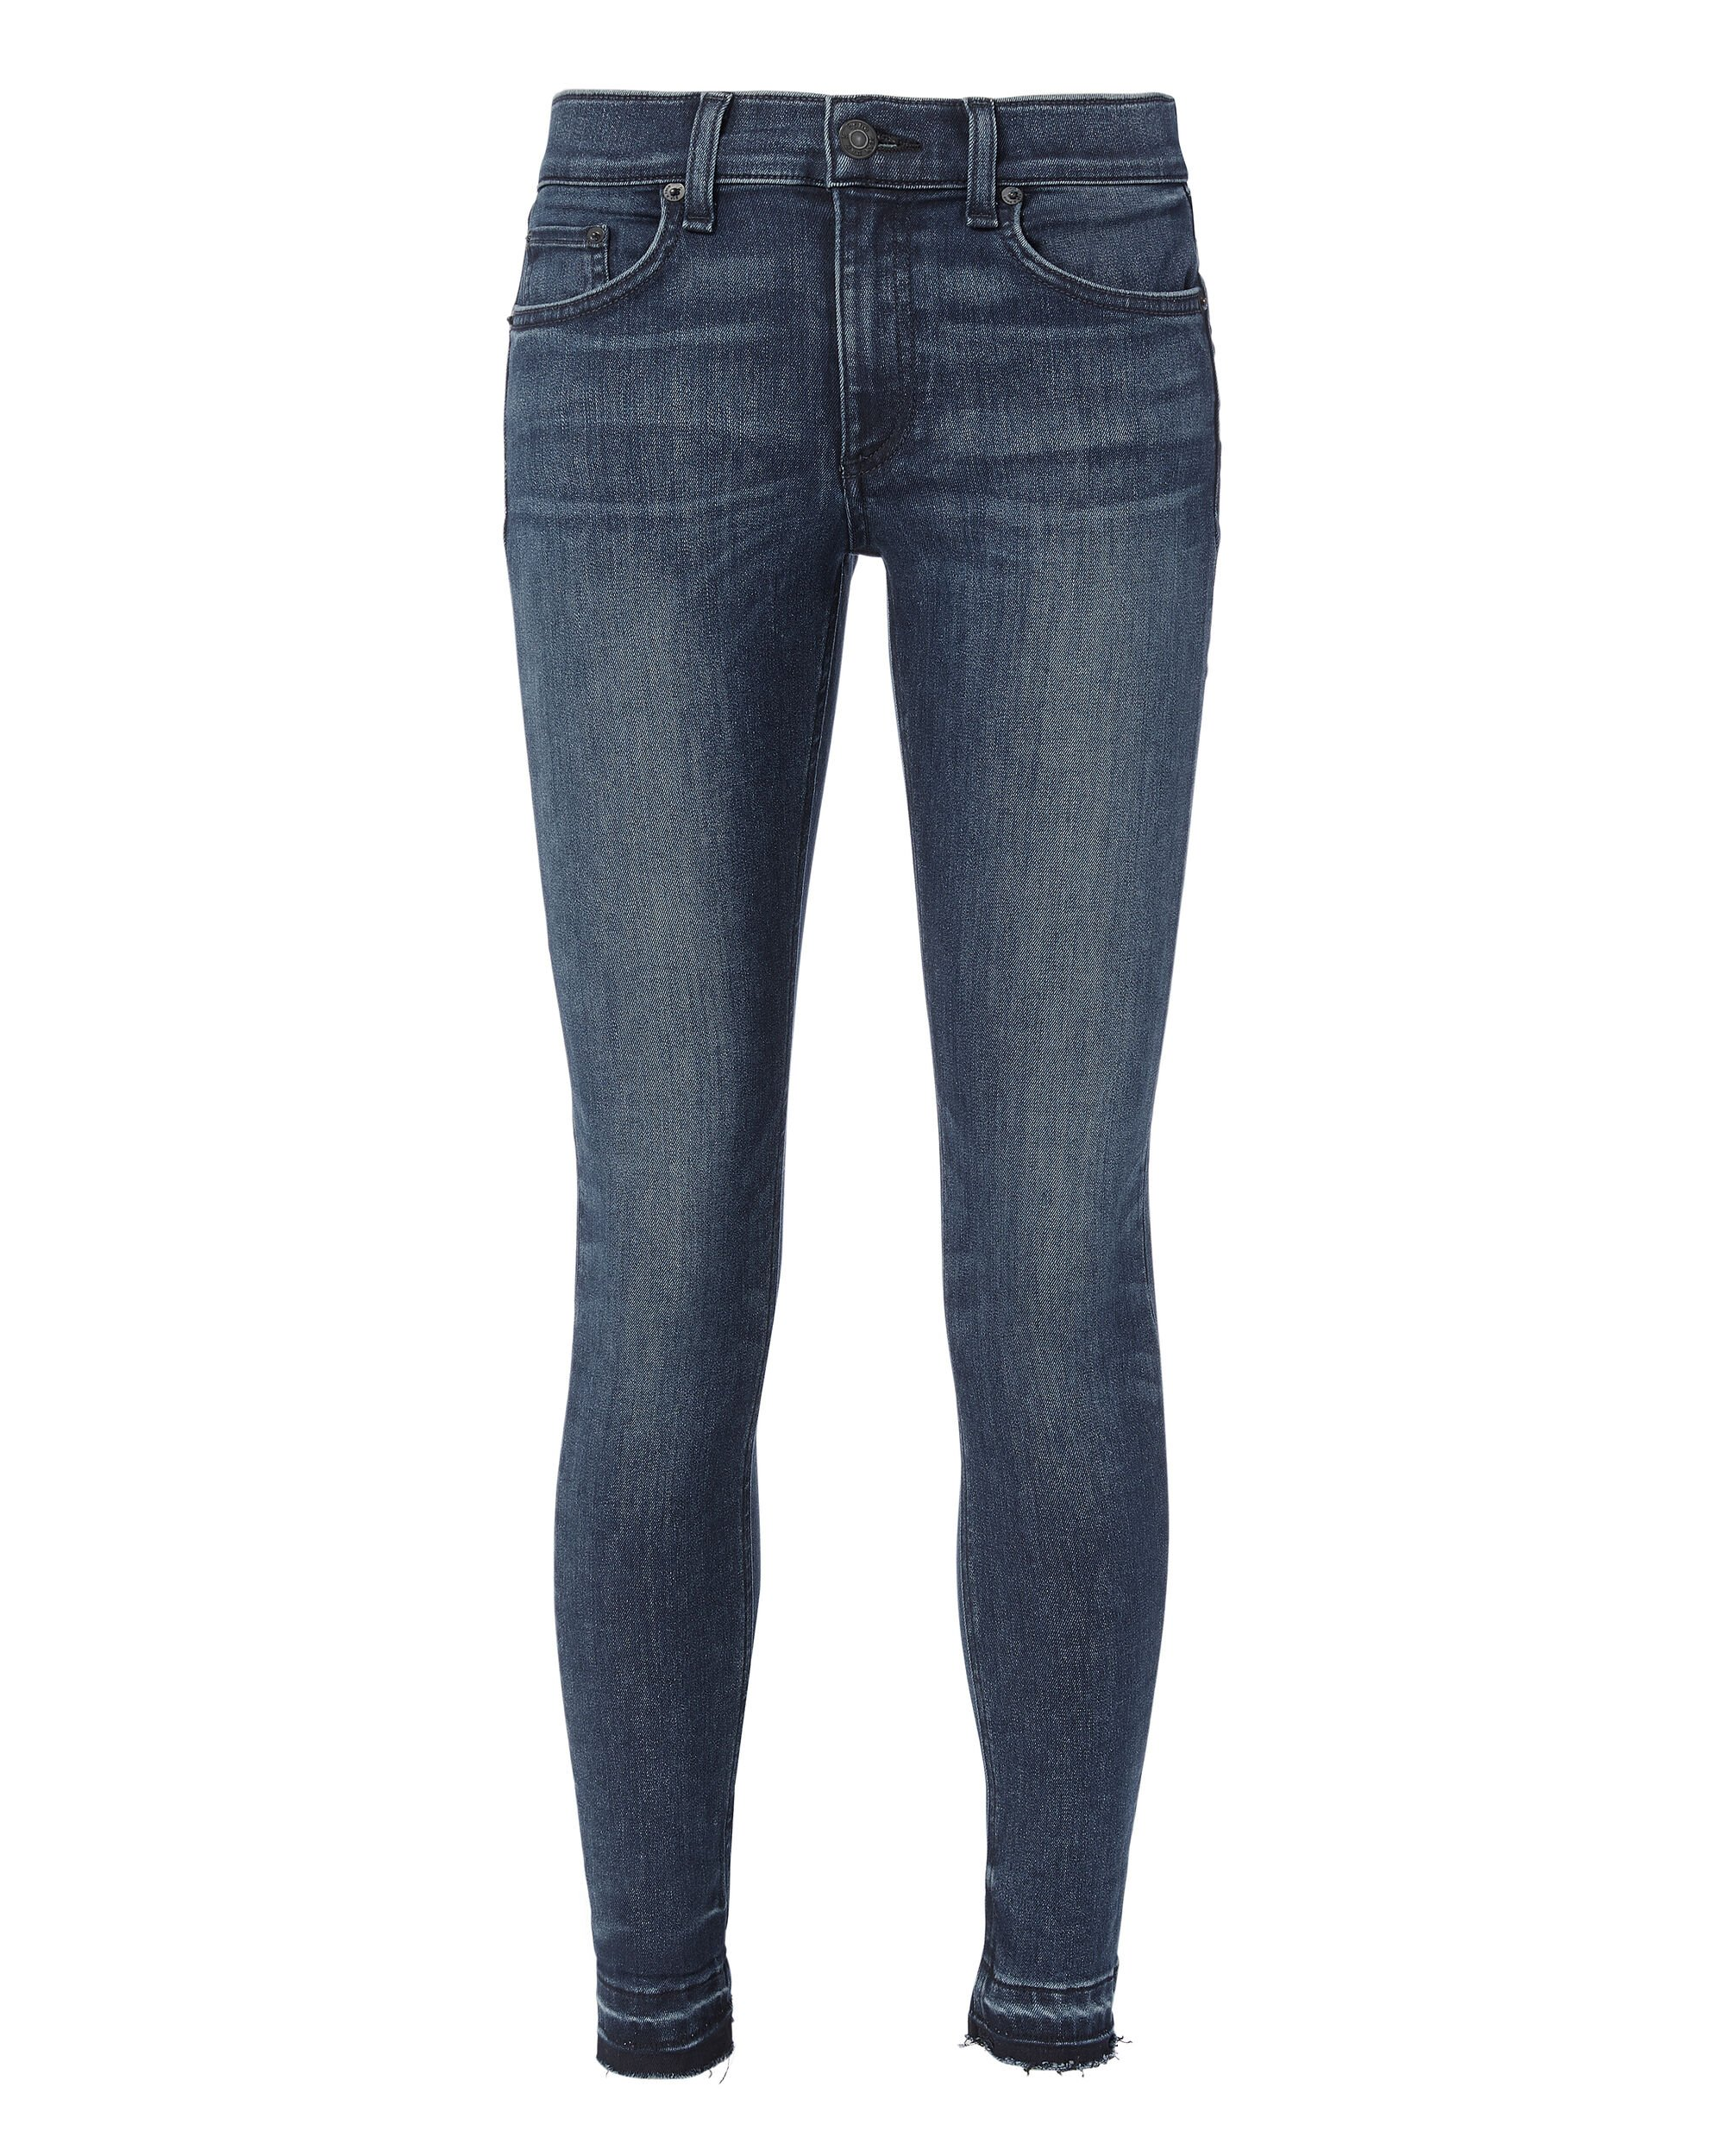 Alembic Two-Tone Hem Jeans, DENIM, hi-res